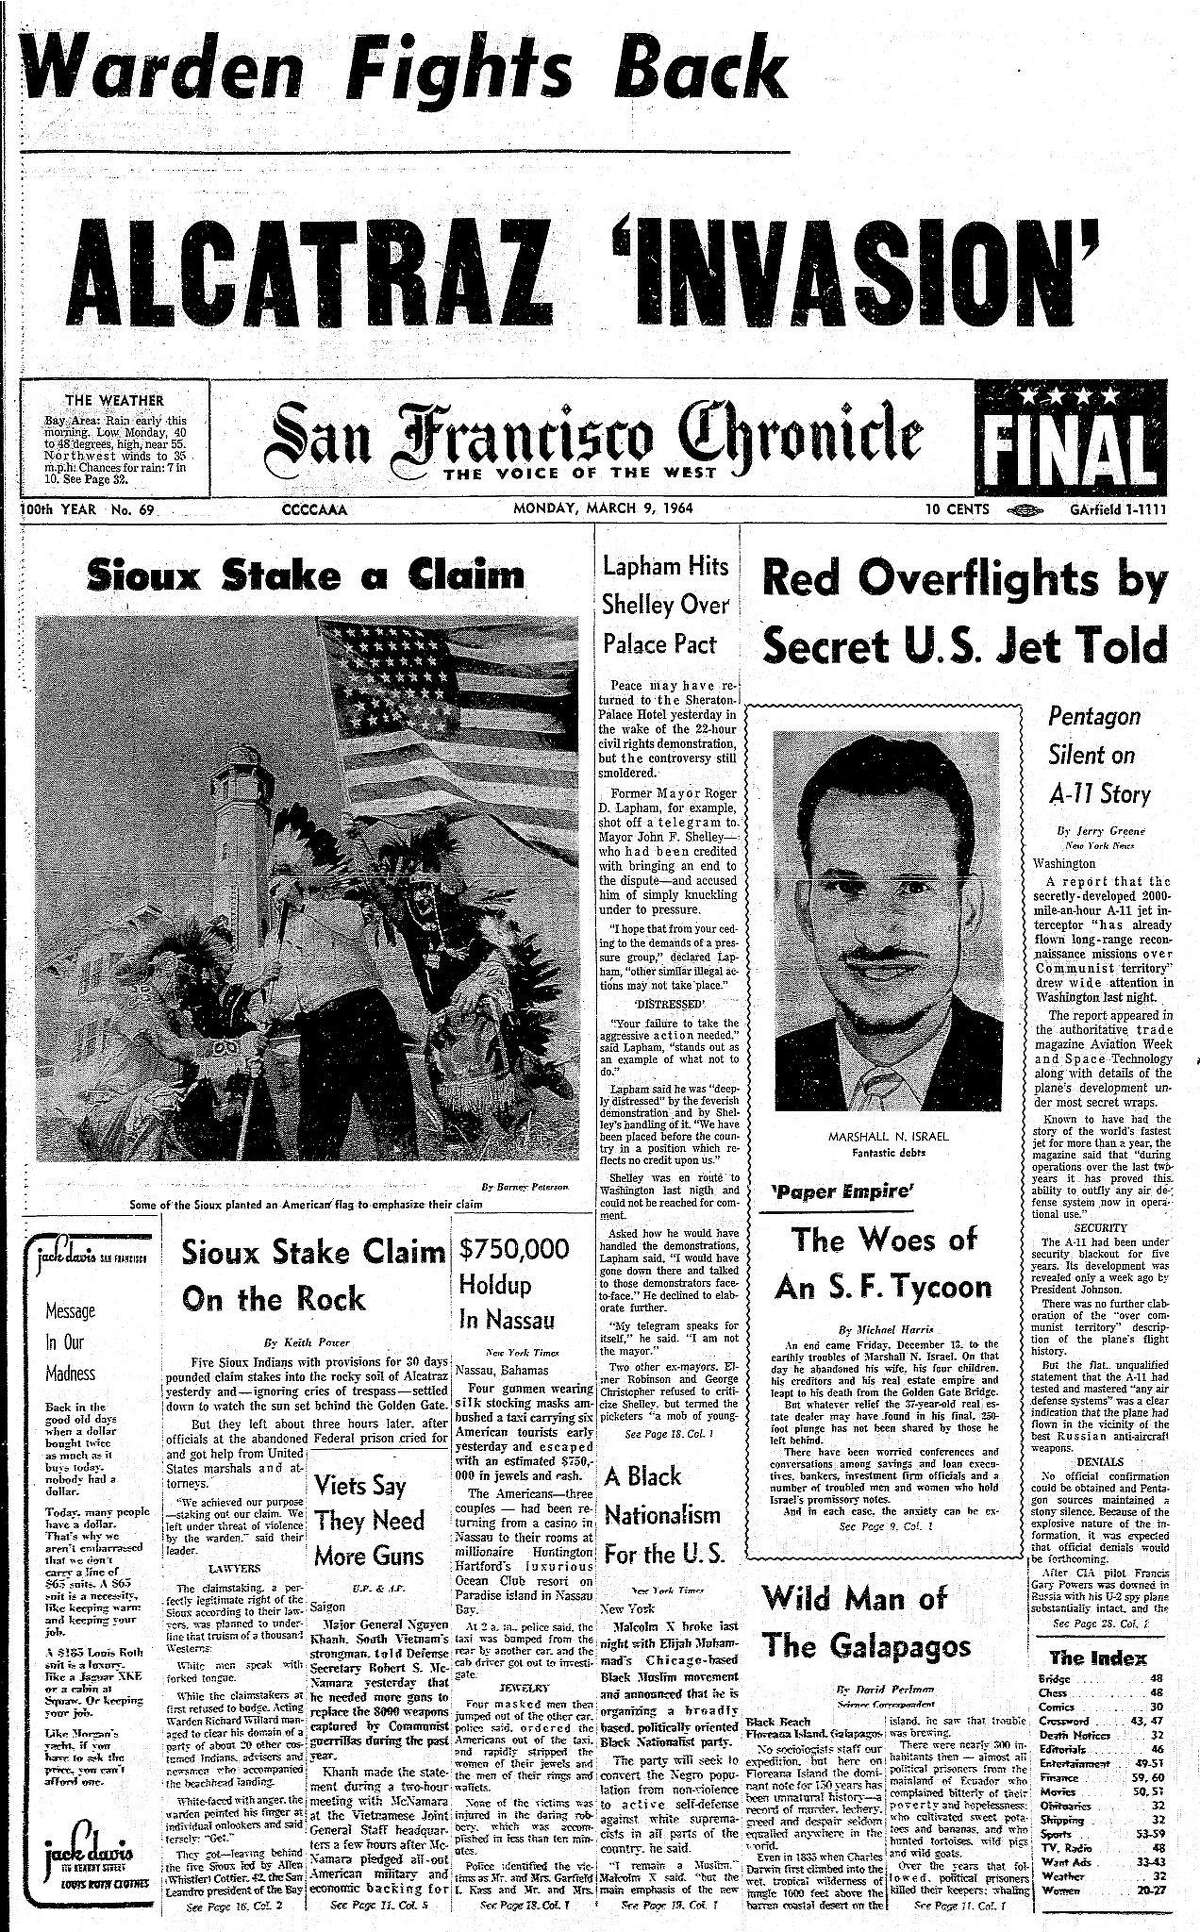 March 9, 1964 Chronicle front page coverage of a group of Sioux Indians who take a boat to Alcatraz, the former island federal prison, and claimed it for the Indian nation